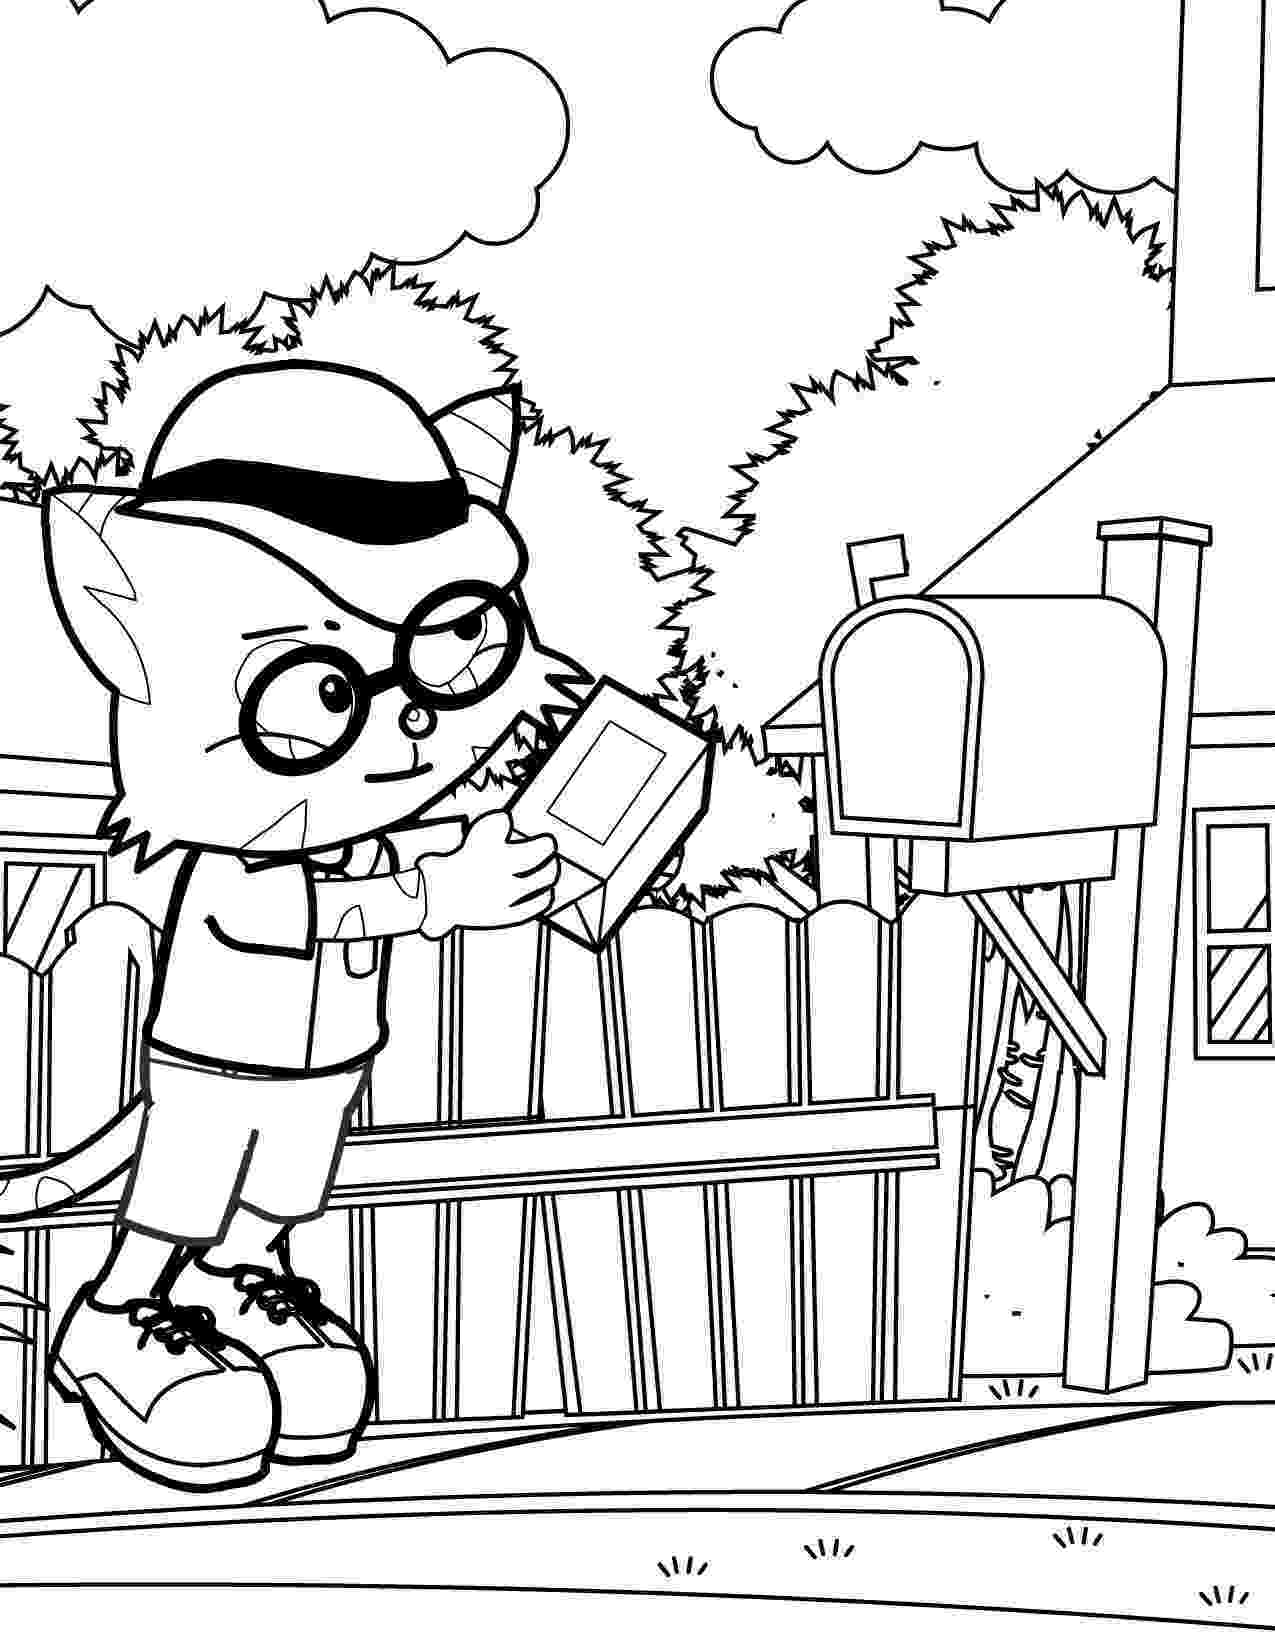 mail carrier coloring page usa printables labor day coloring pages mail carrier mail coloring carrier page